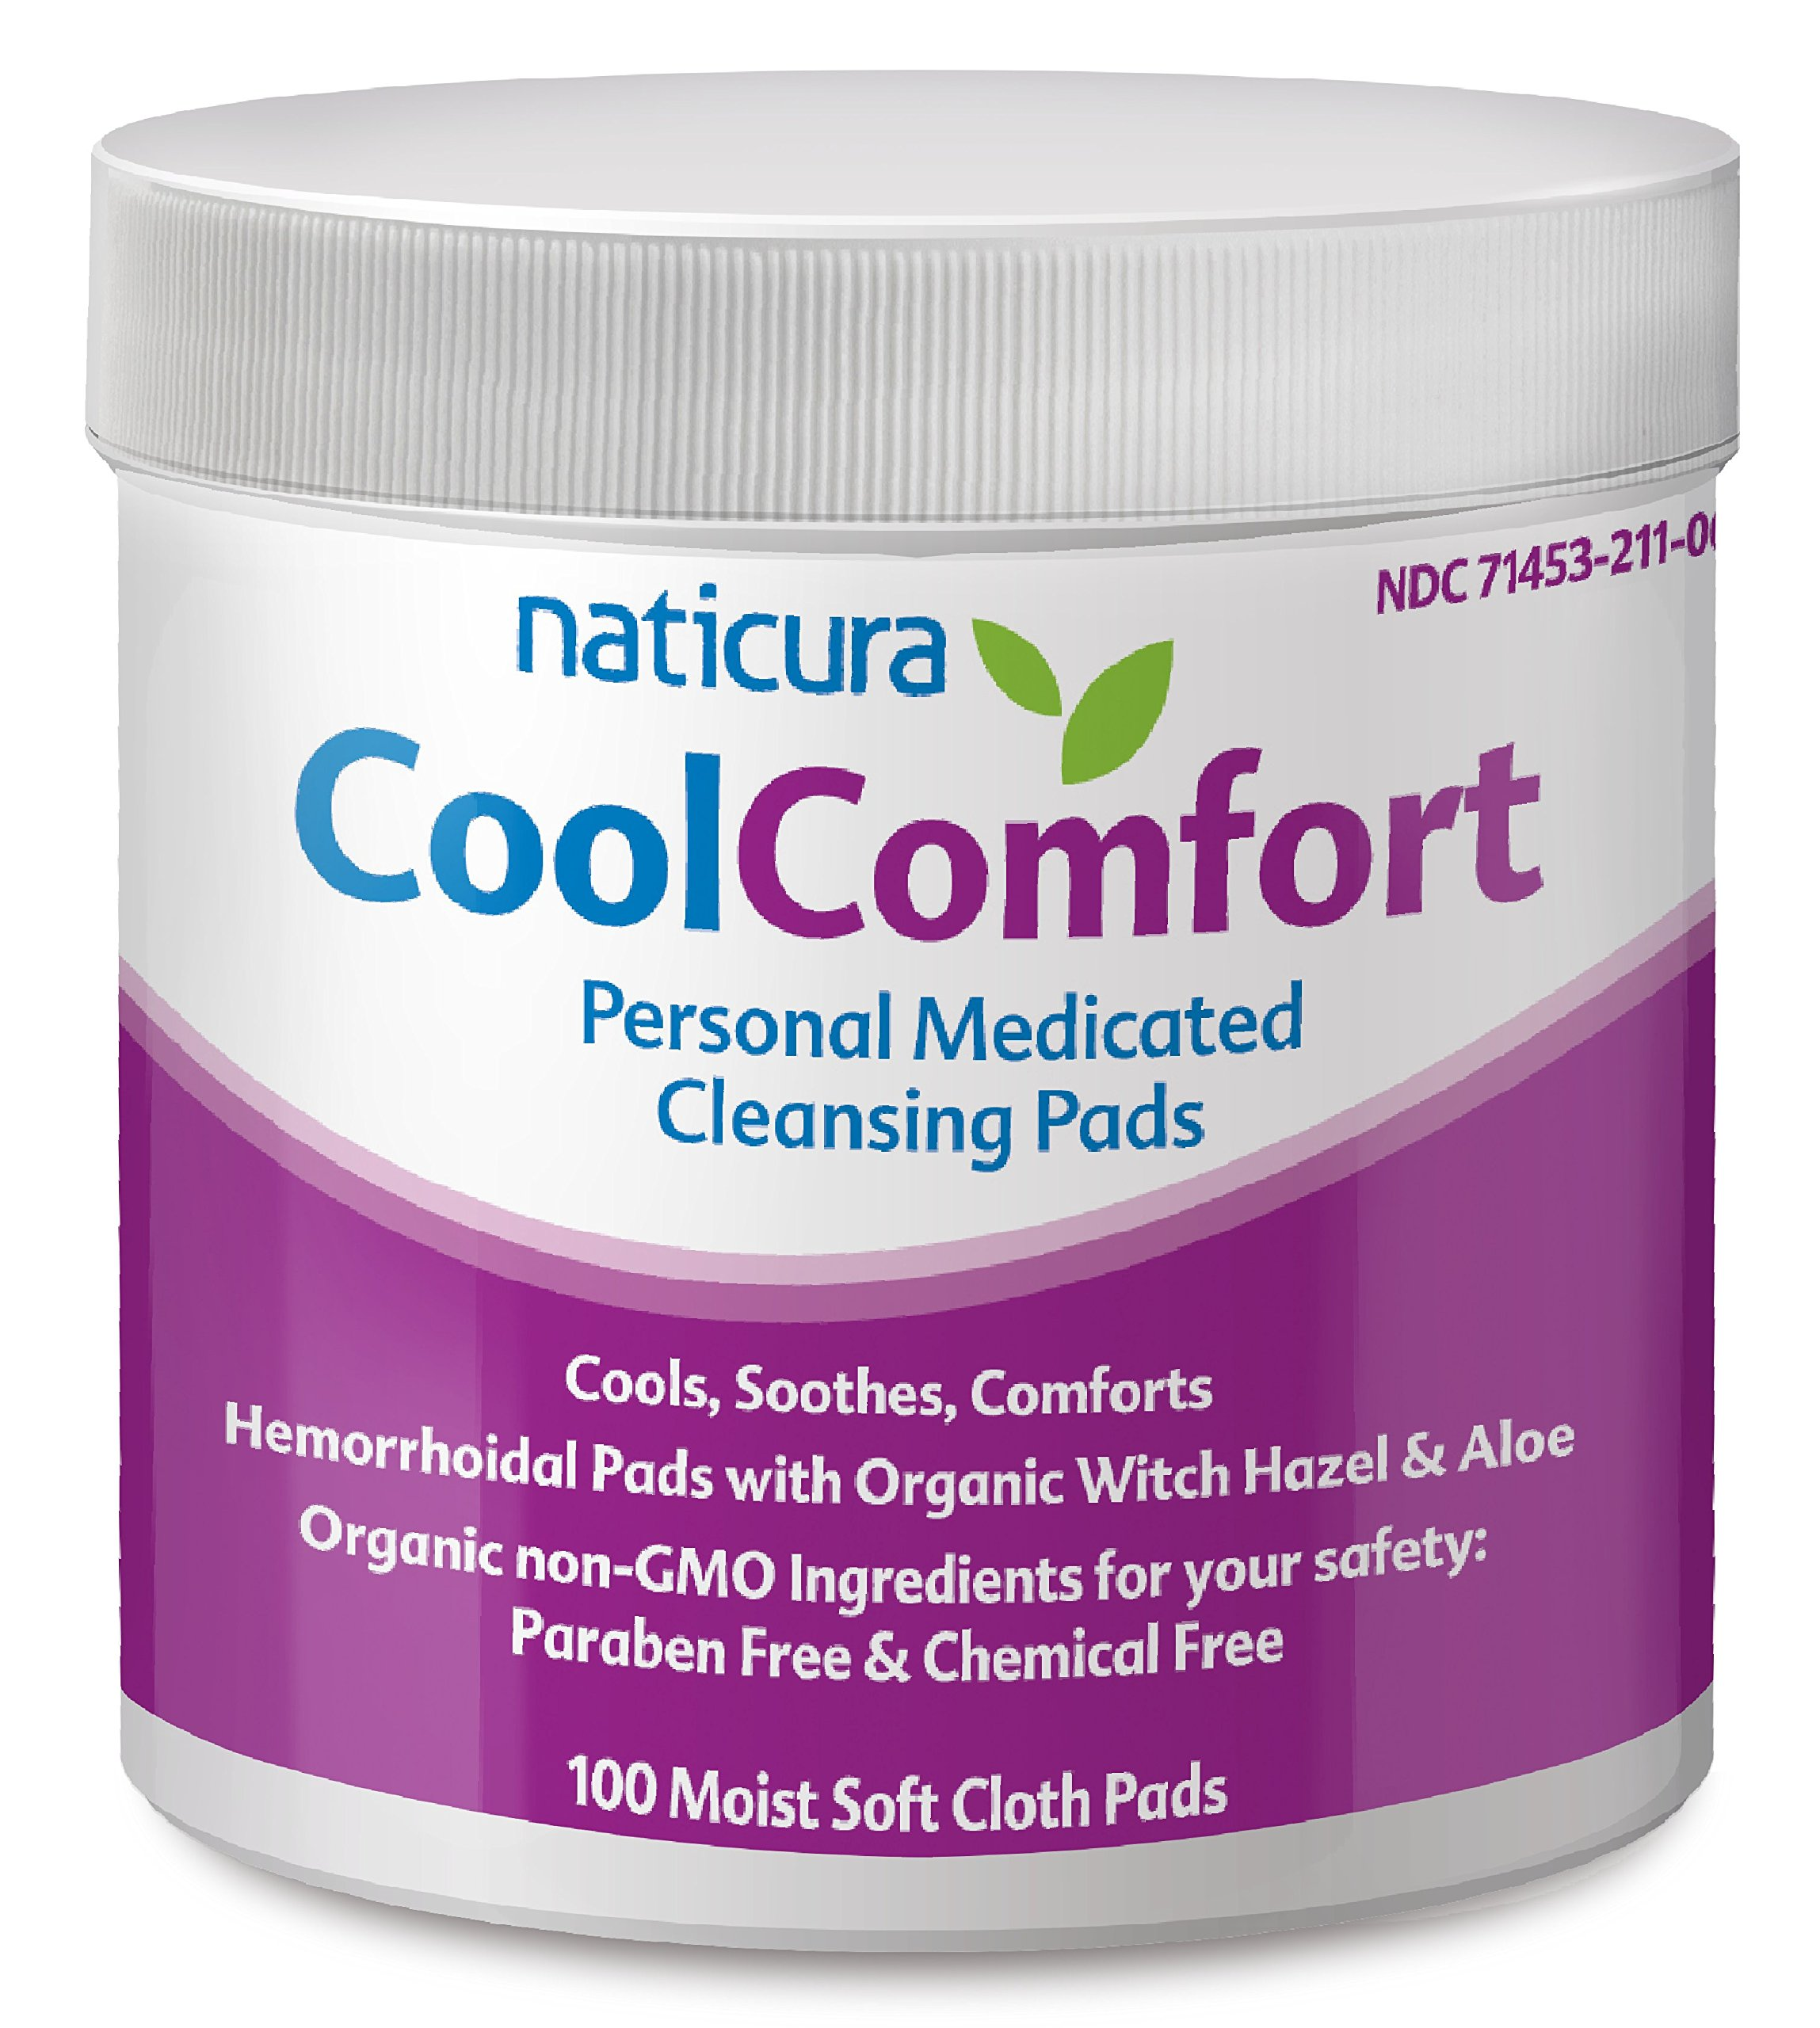 Hemorrhoidal Personal Medicated Cleansing Wipes; 100 Pads with Organic Witch Hazel & Aloe Vera for Refreshing Cool Comfort Soothing Relief by Naticura